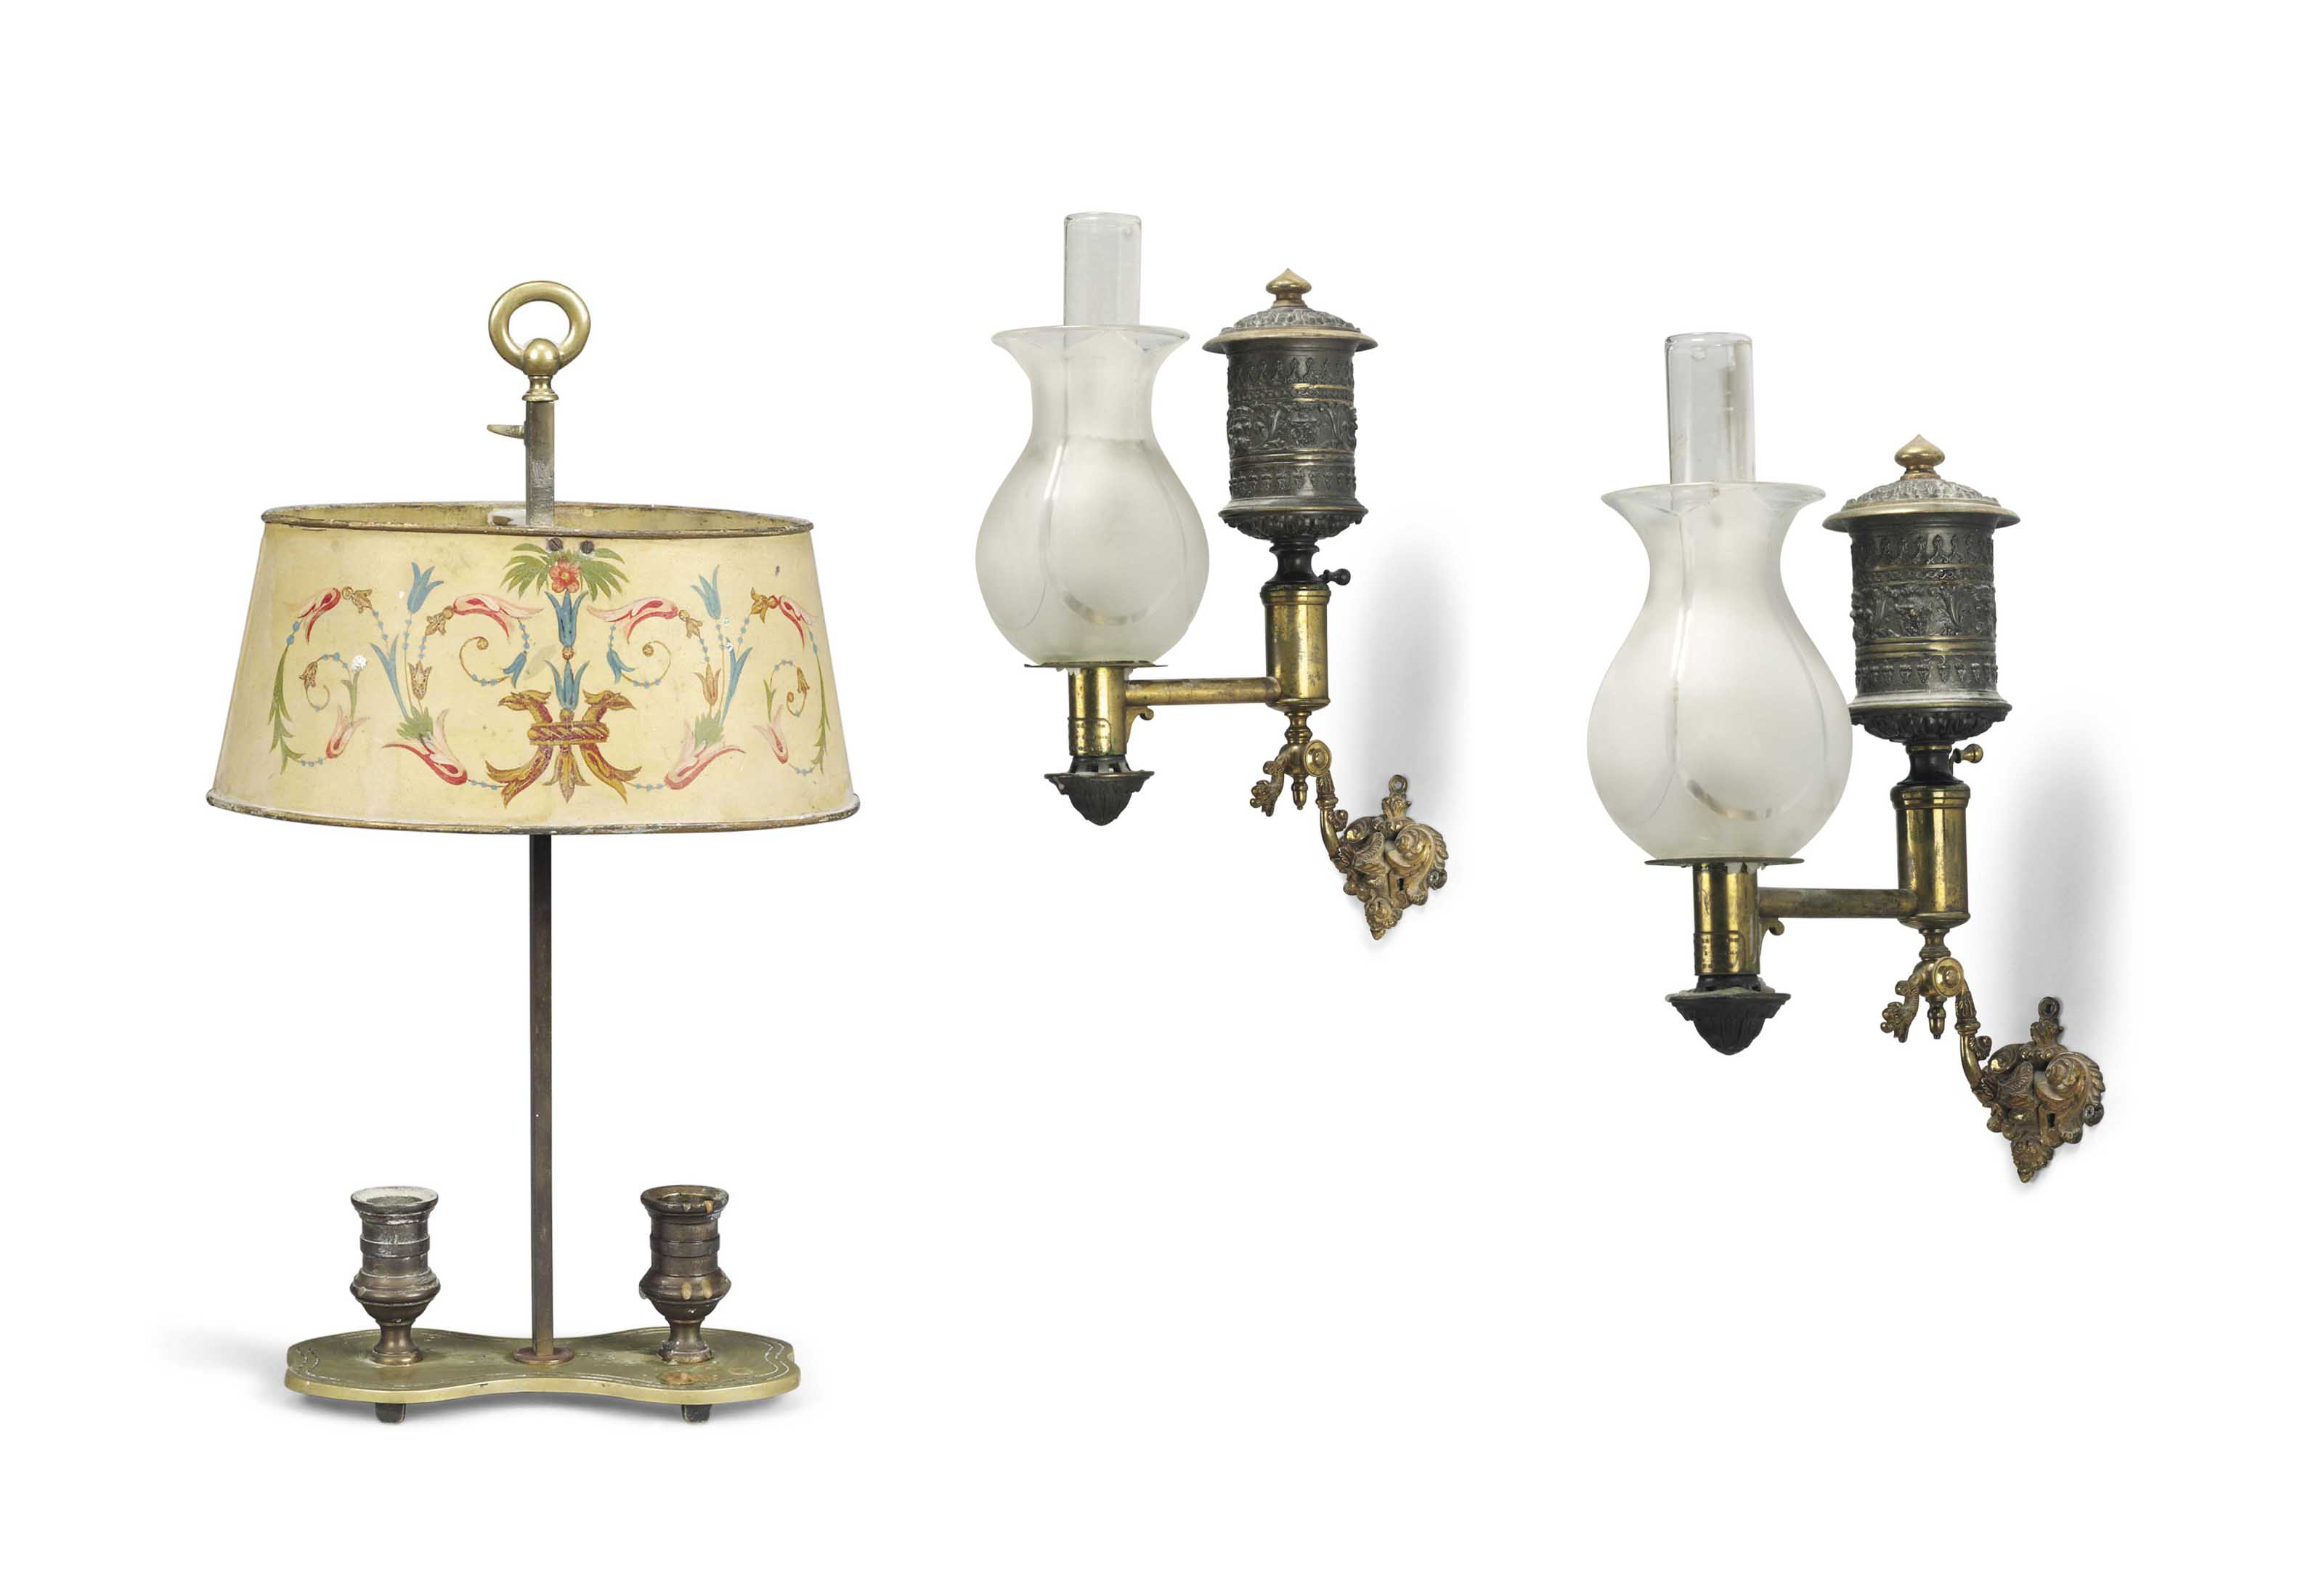 A PAIR OF GEORGE IV PATINATED BRONZE AND BRASS WALL LIGHTS